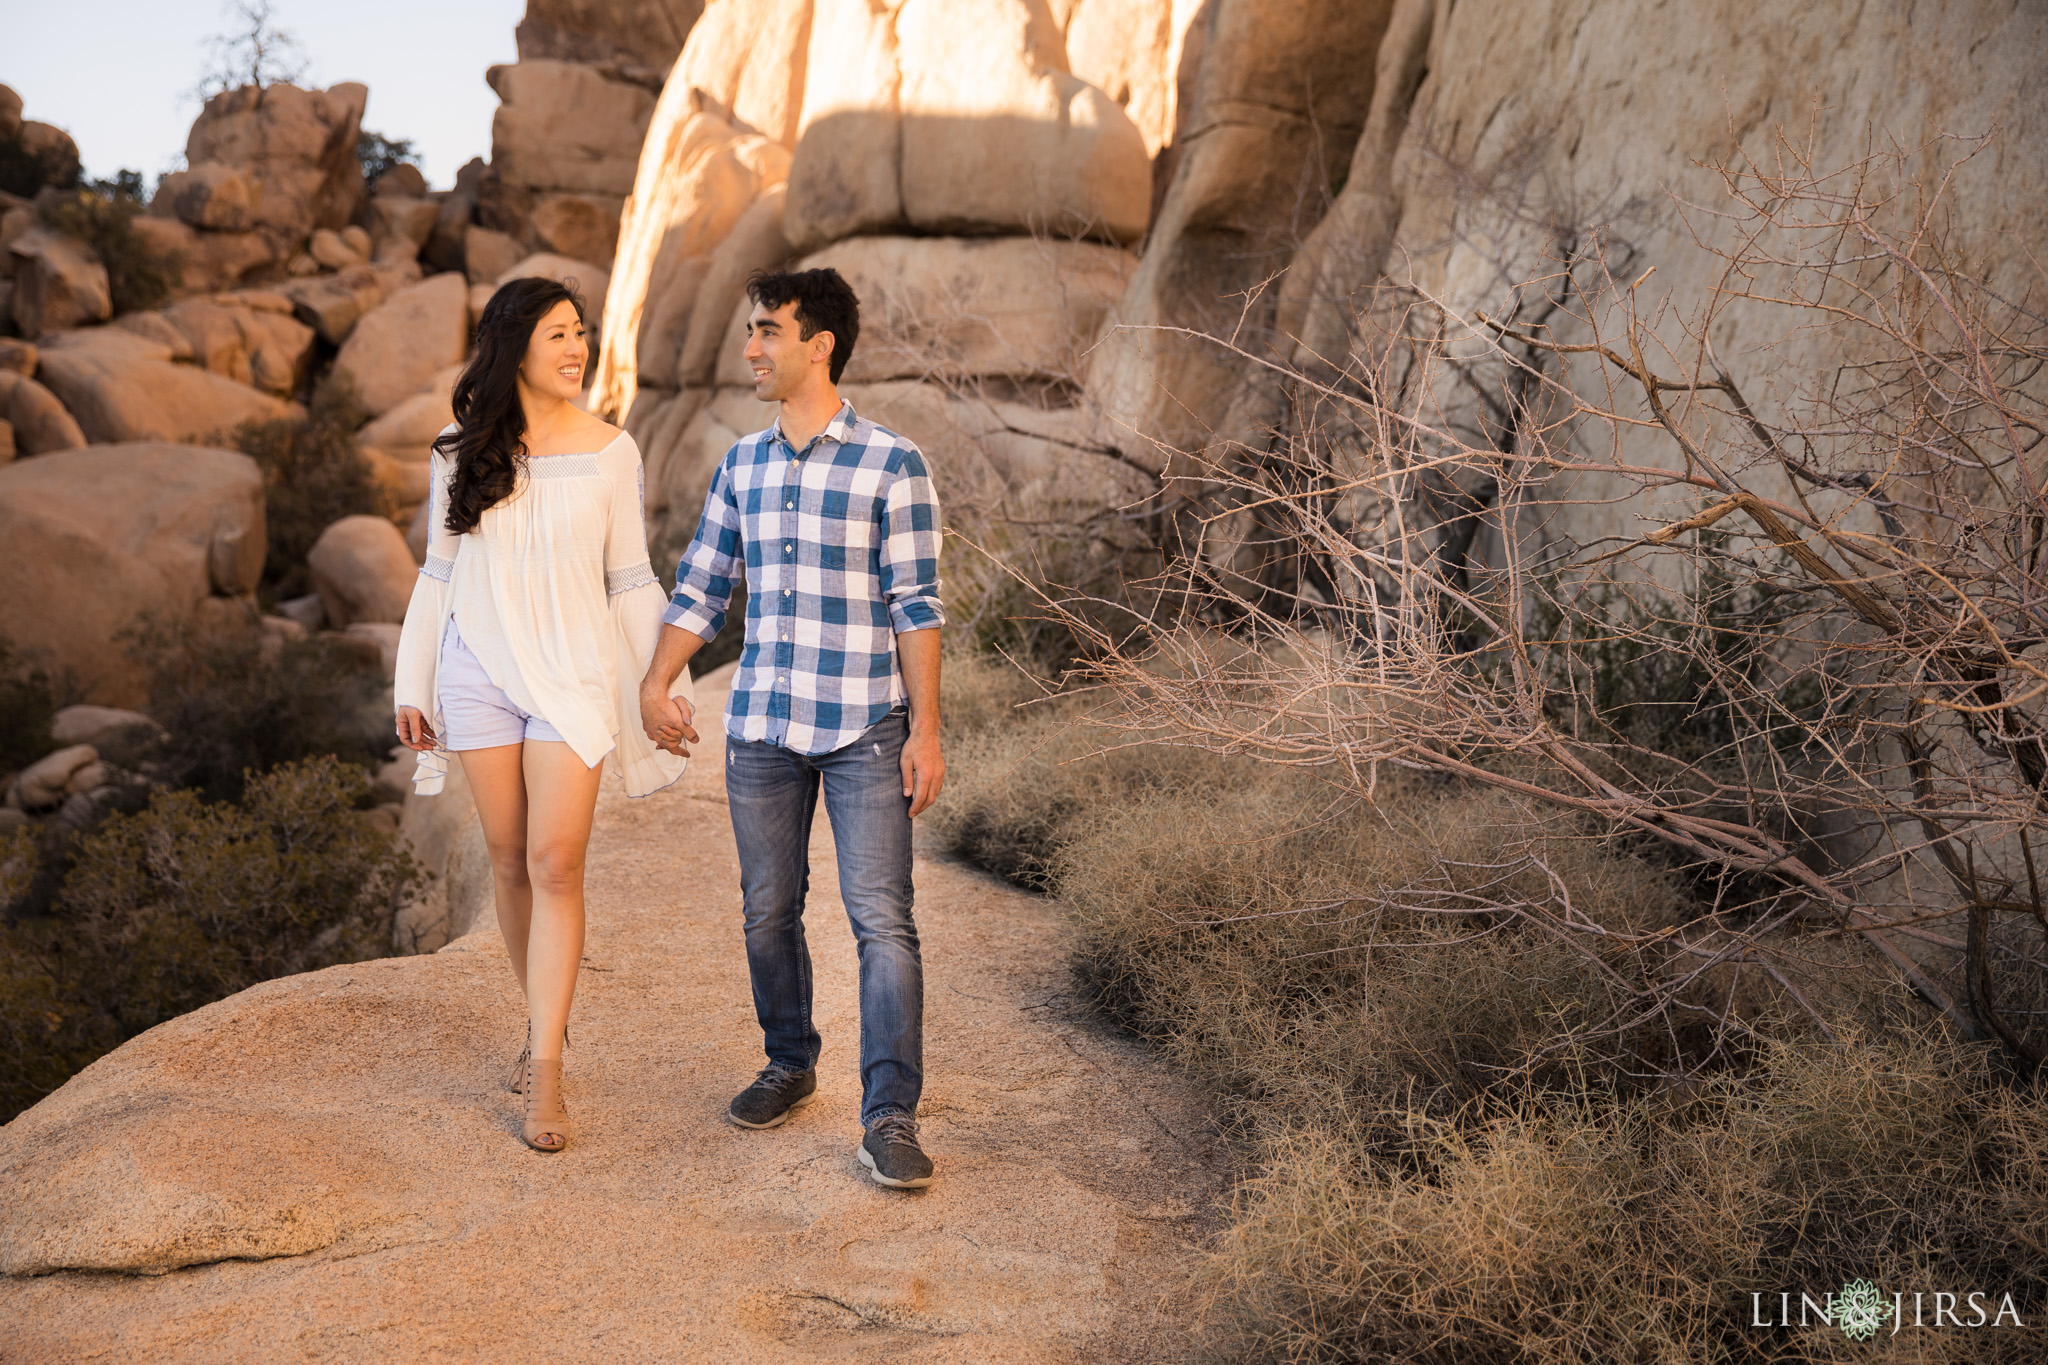 13 joshua tree national park engagement photography